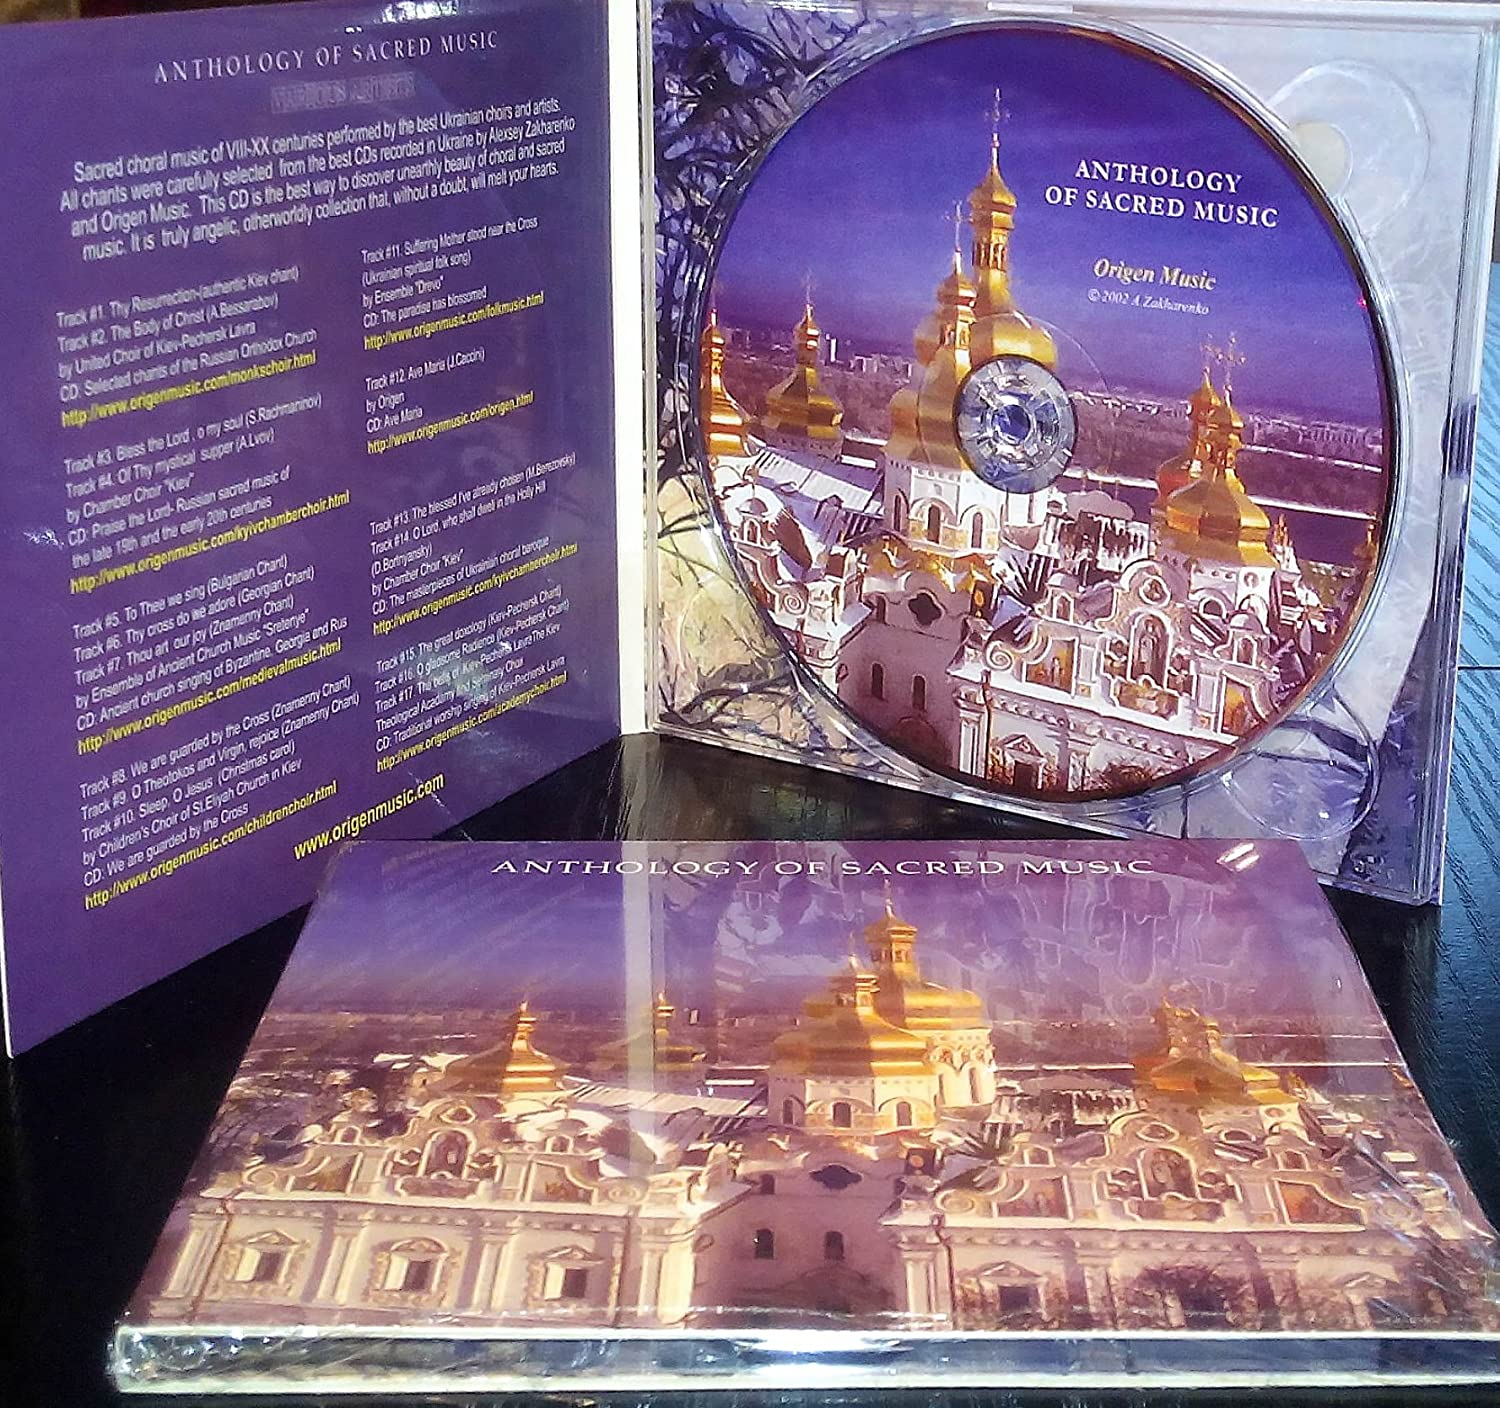 ANTHOLOGY OF SACRED CHORAL MUSIC  Praise and Worship Chant of Eastern  Europe Orthodox Church  Ancient Medieval Byzantine Monk Chanting,  Rachmaninoff,